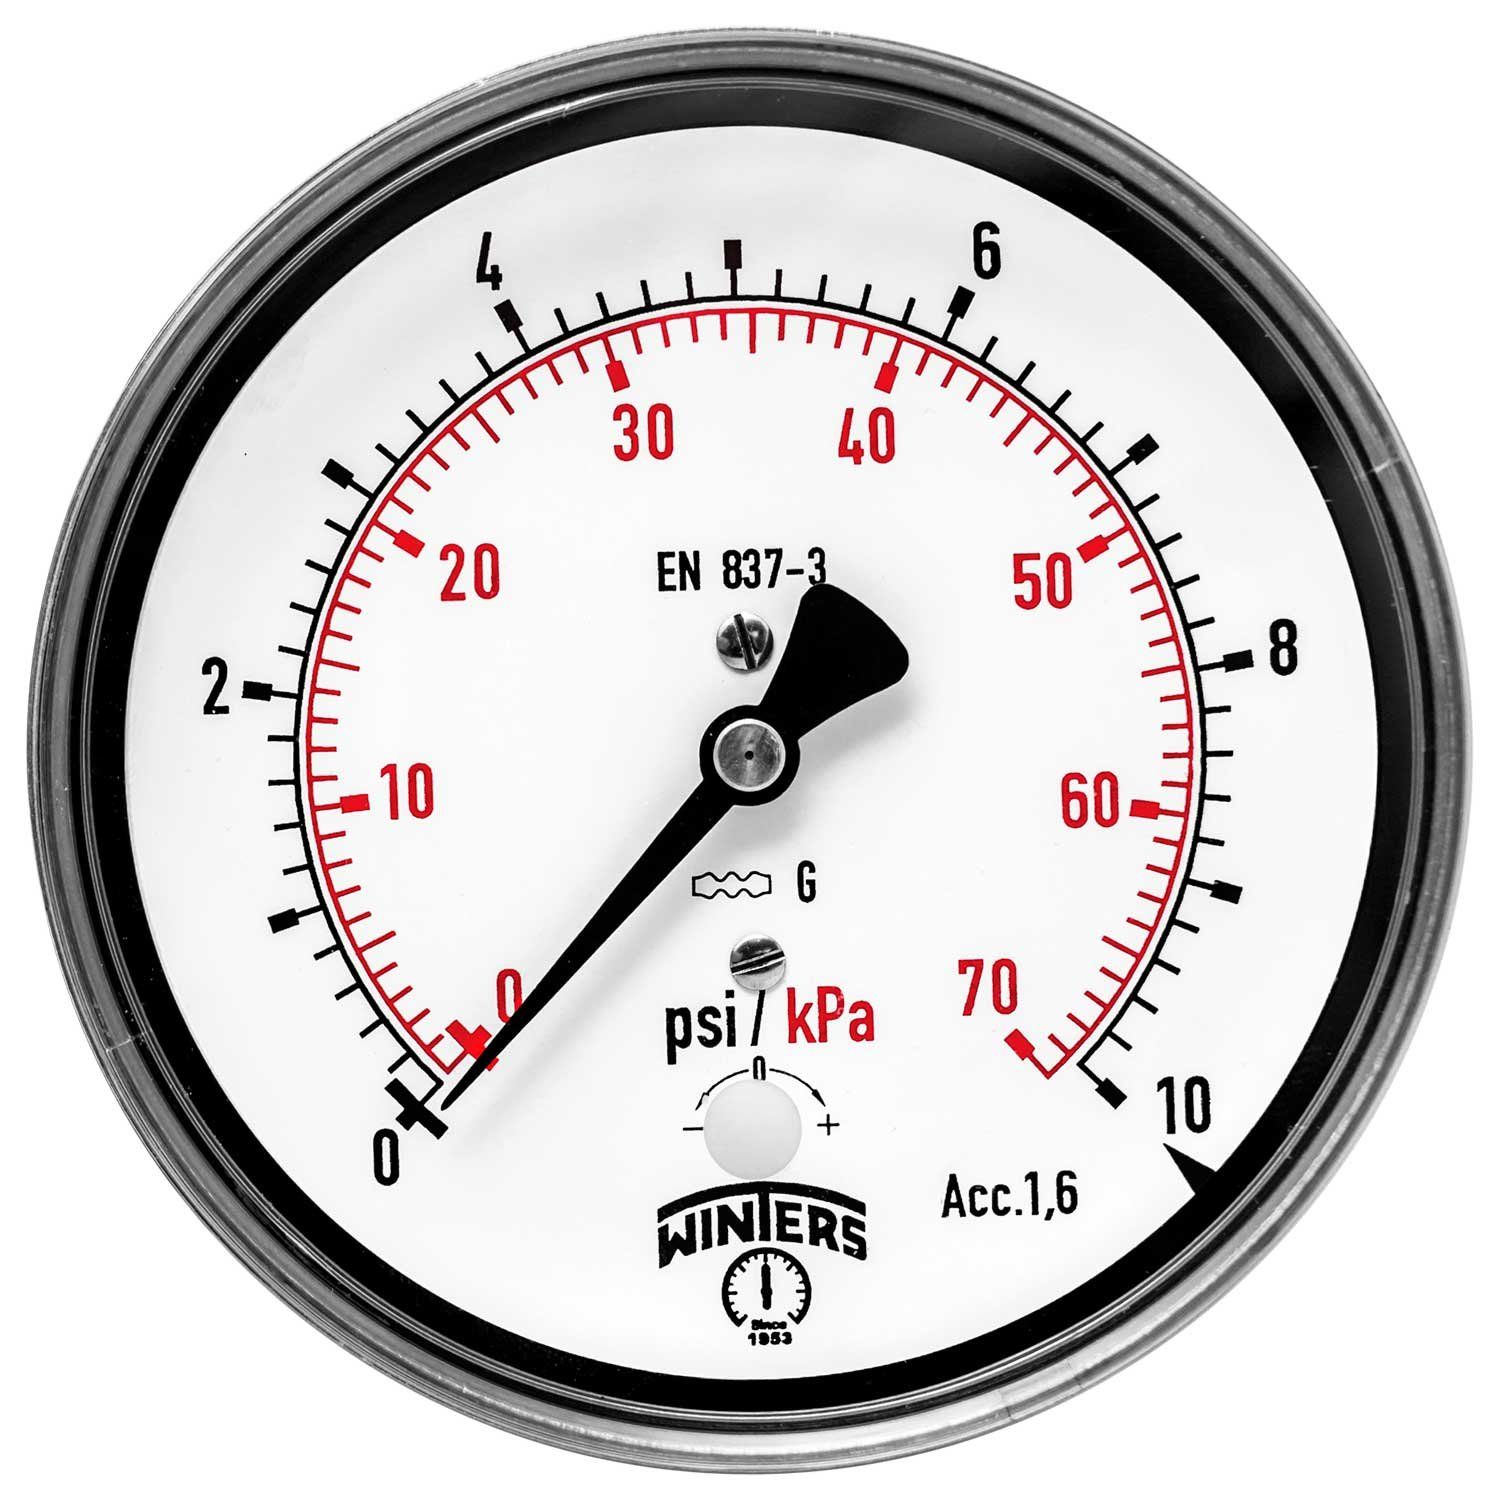 Winters PLP Series Steel Dual Scale Low Pressure Gauge with Stainless Steel Internals, 0-10 psi, 4